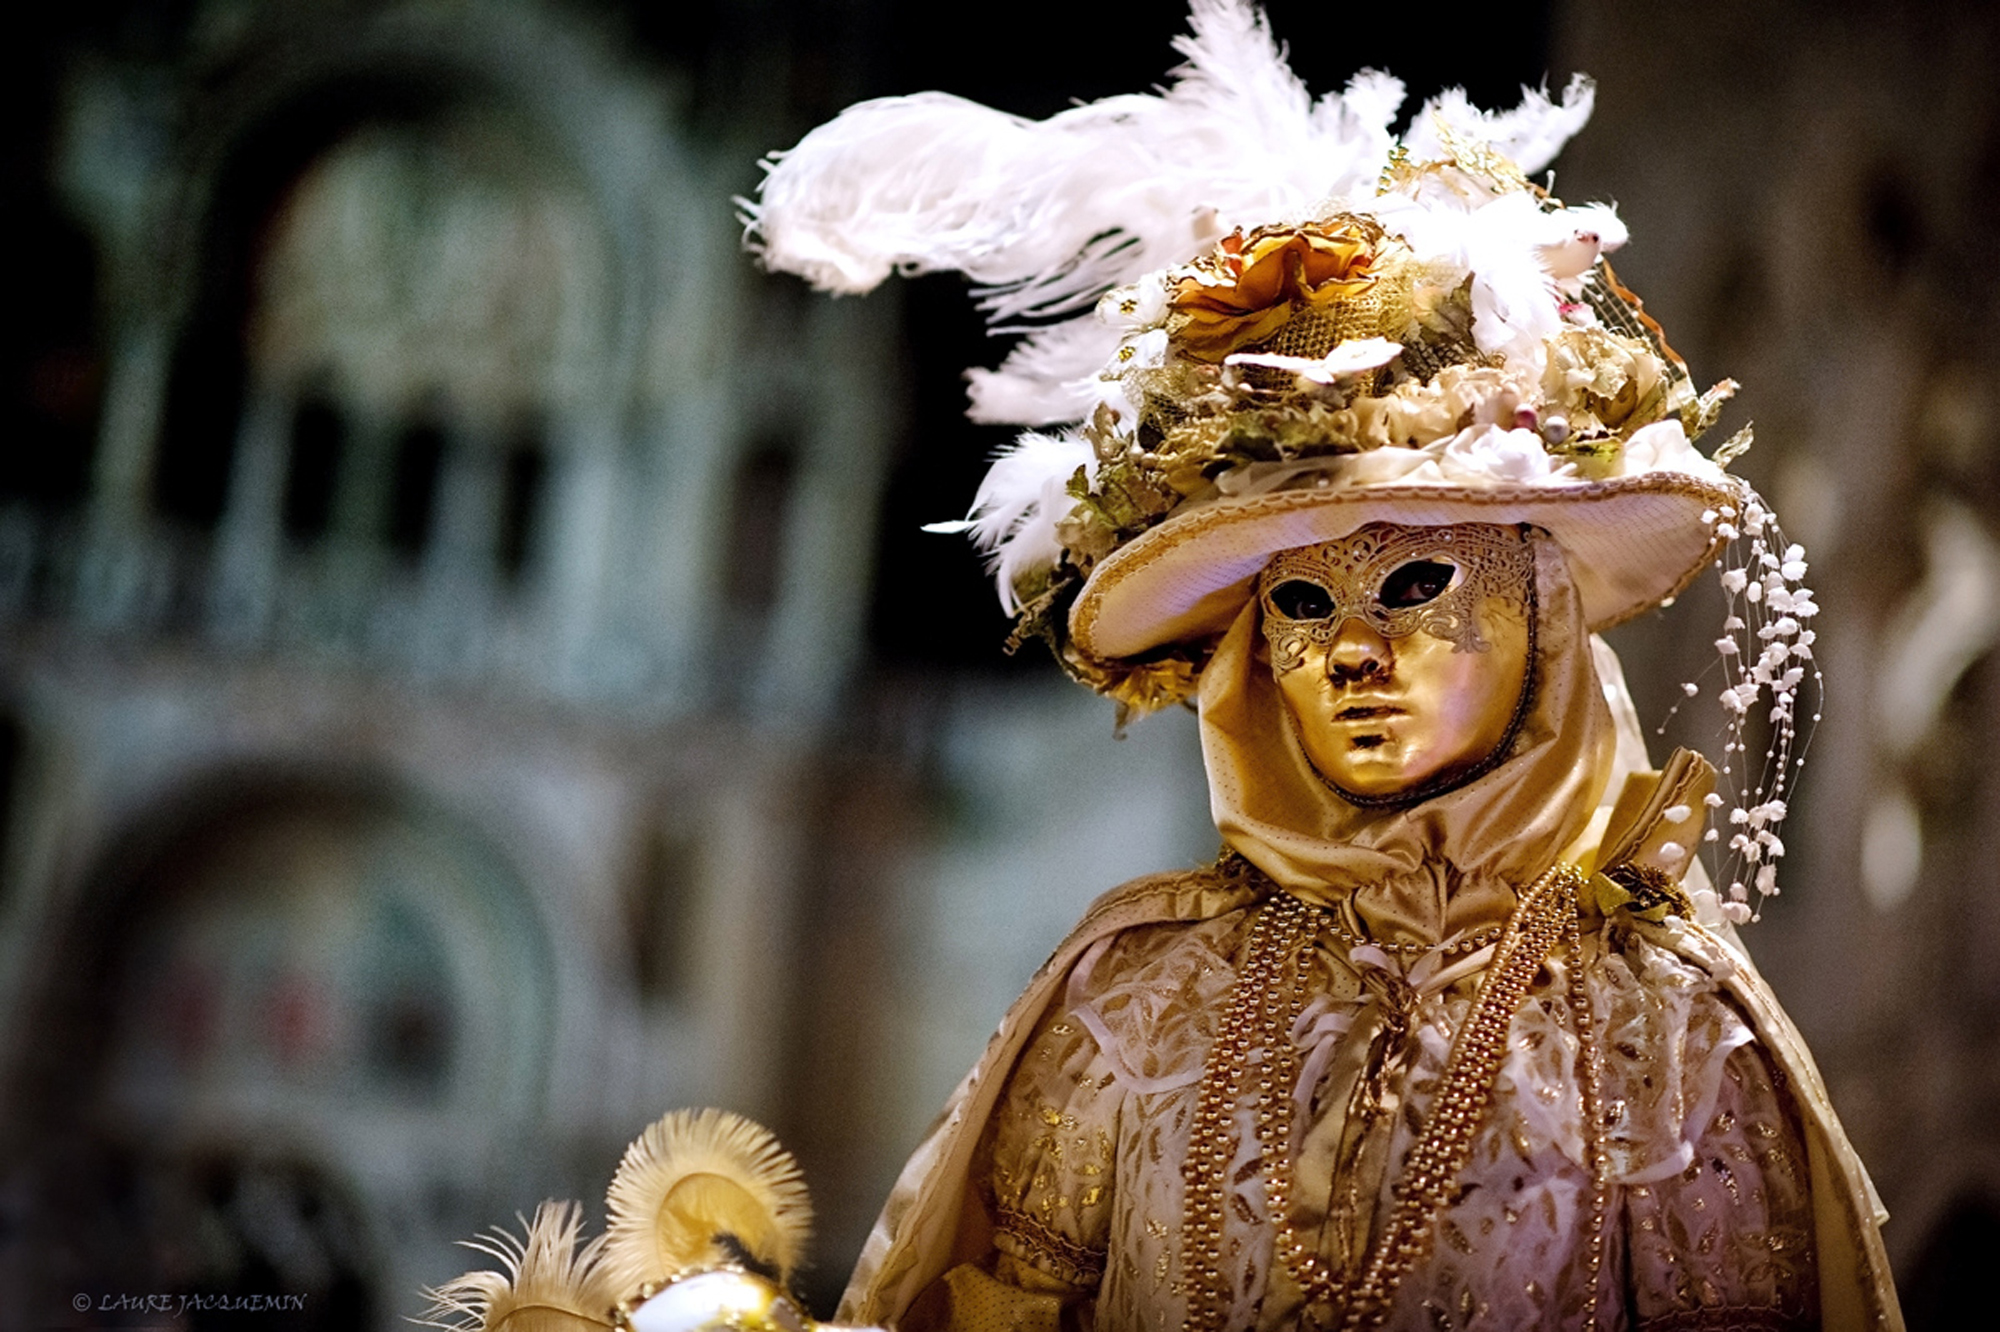 personal works laure jacquemin best venice carnaval photography (64).jpg